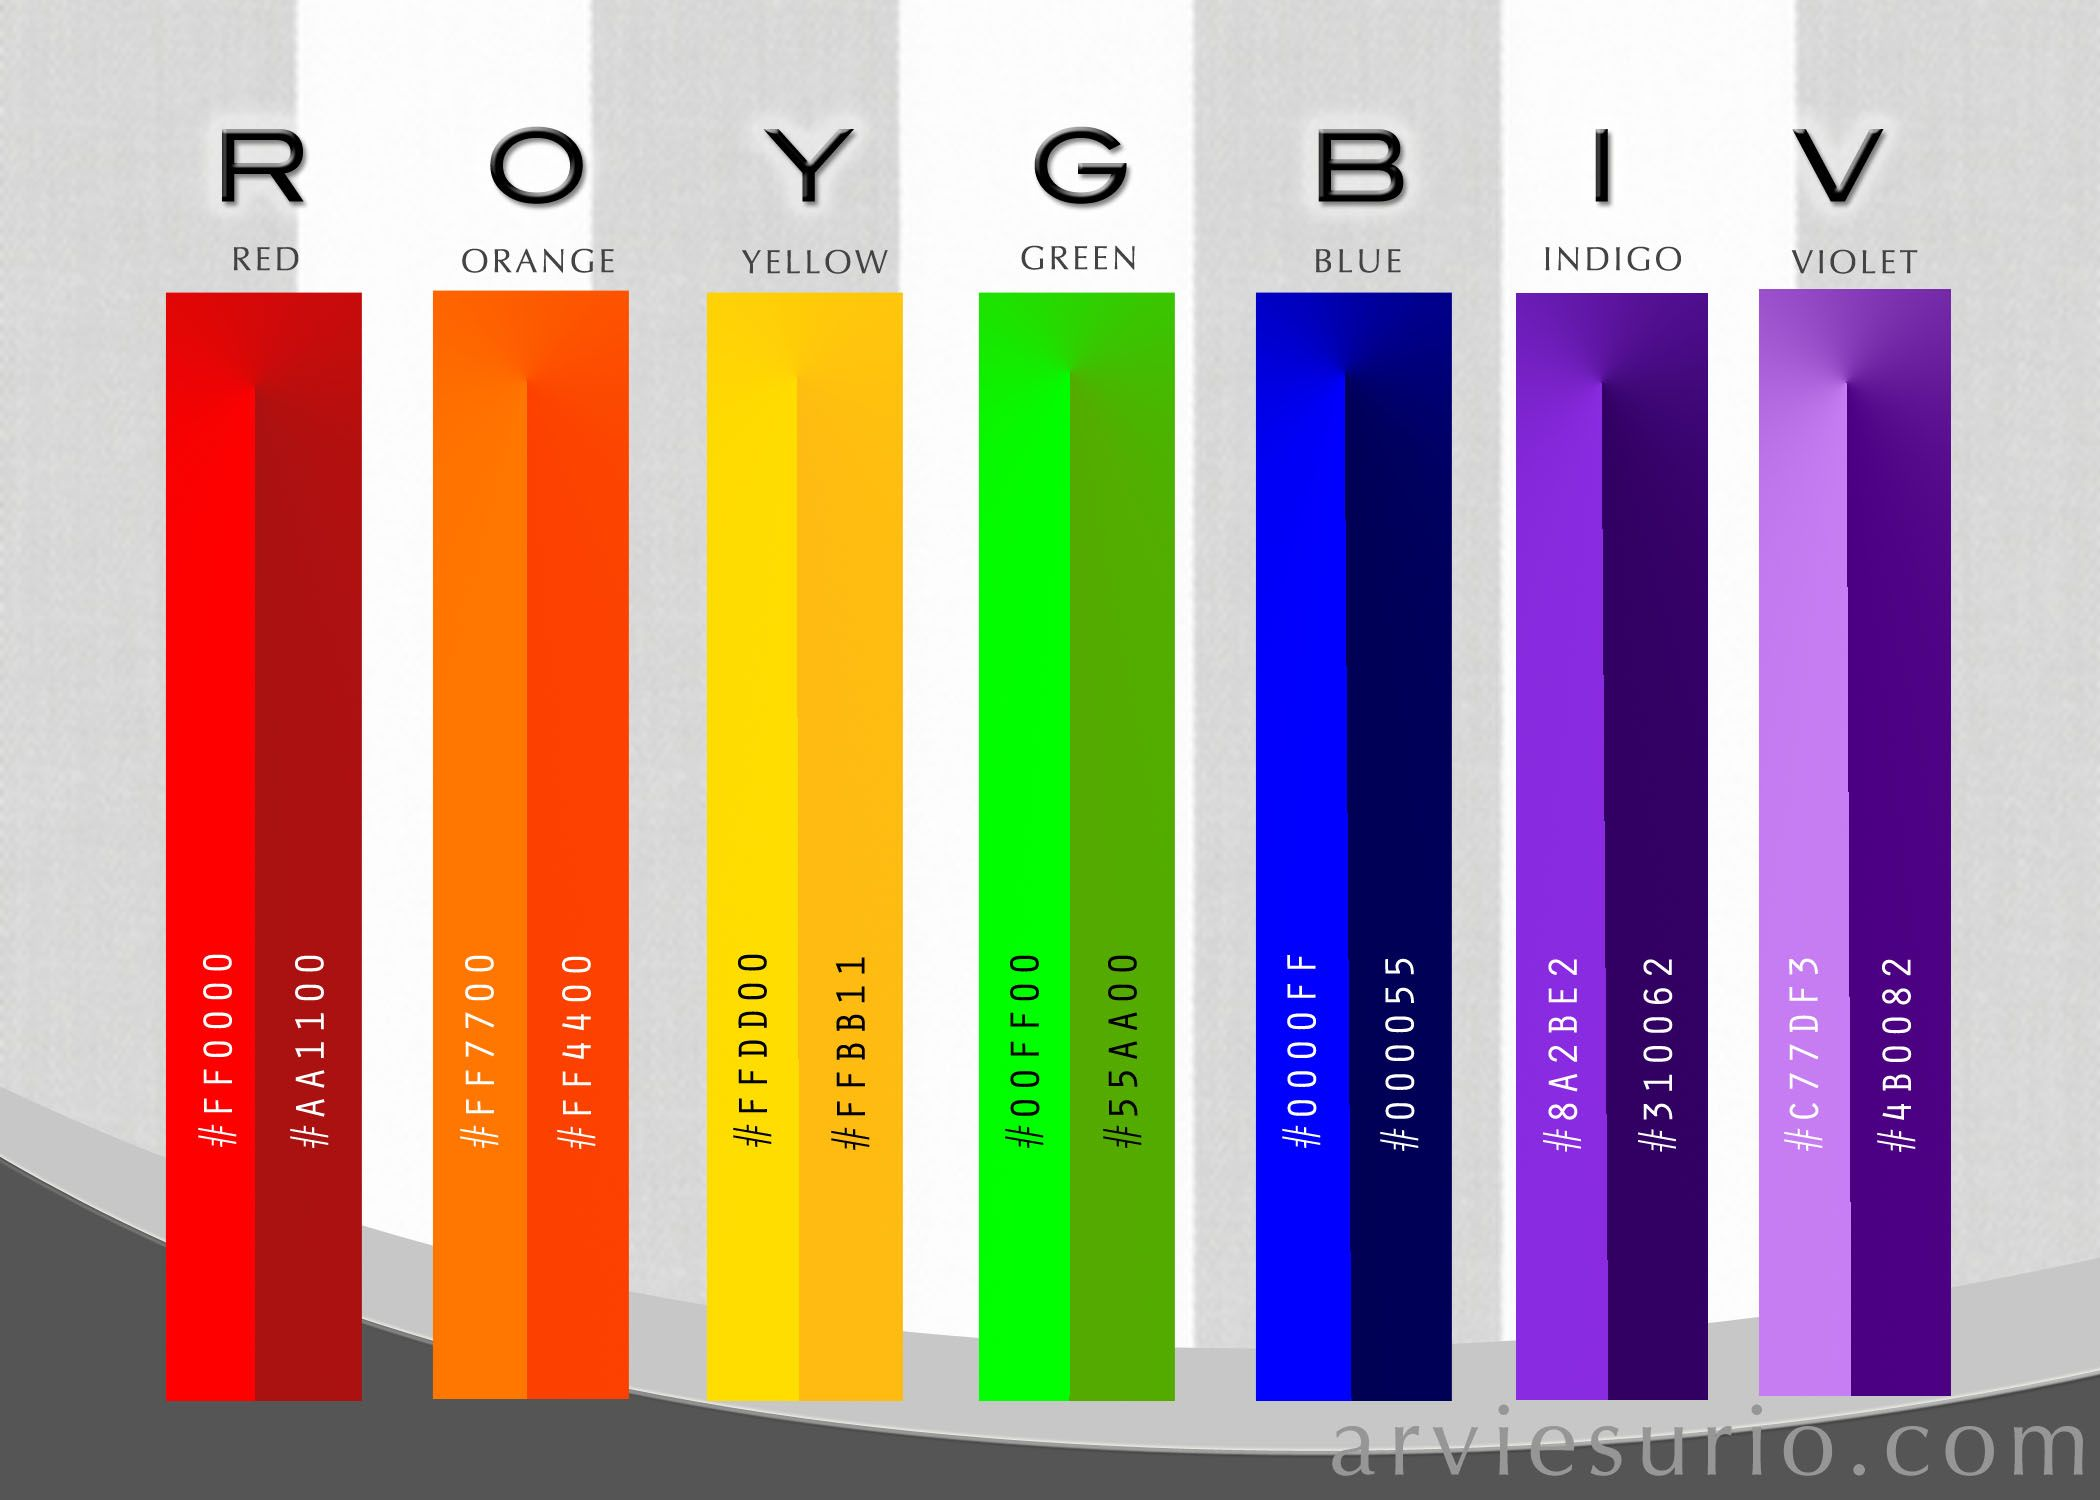 Rainbow colors in order pictures - Roygbiv Rainbow With Hexadecimal Code